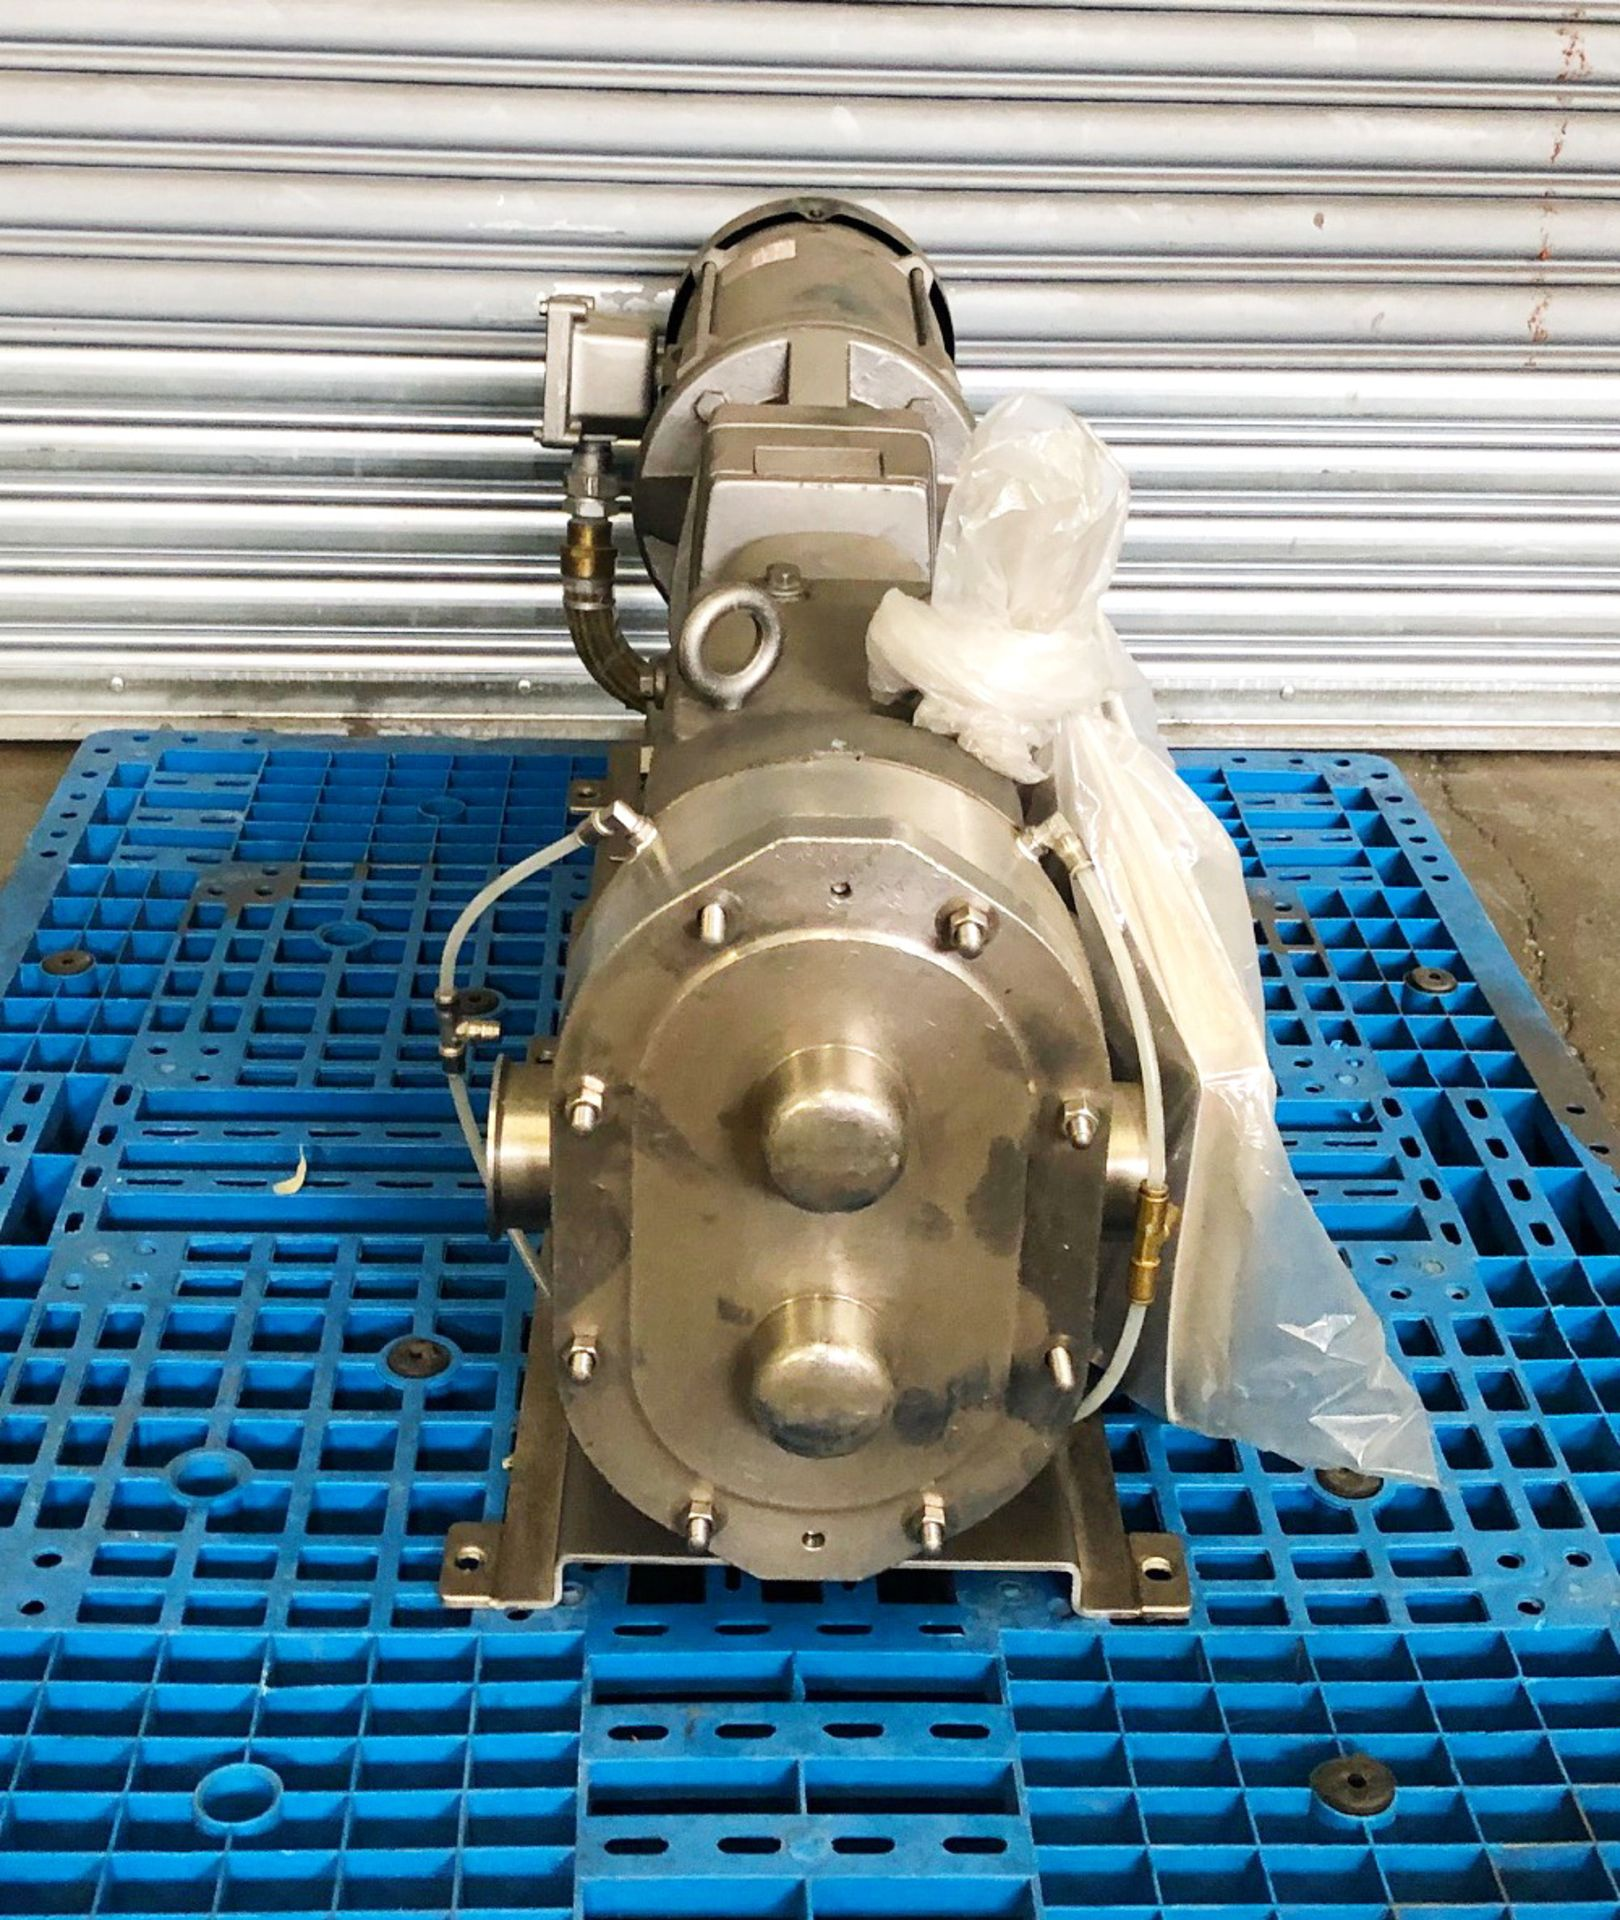 Lot 120 - Waukesha stainless steel positive displacement pump, driven by a 3HP XP motor